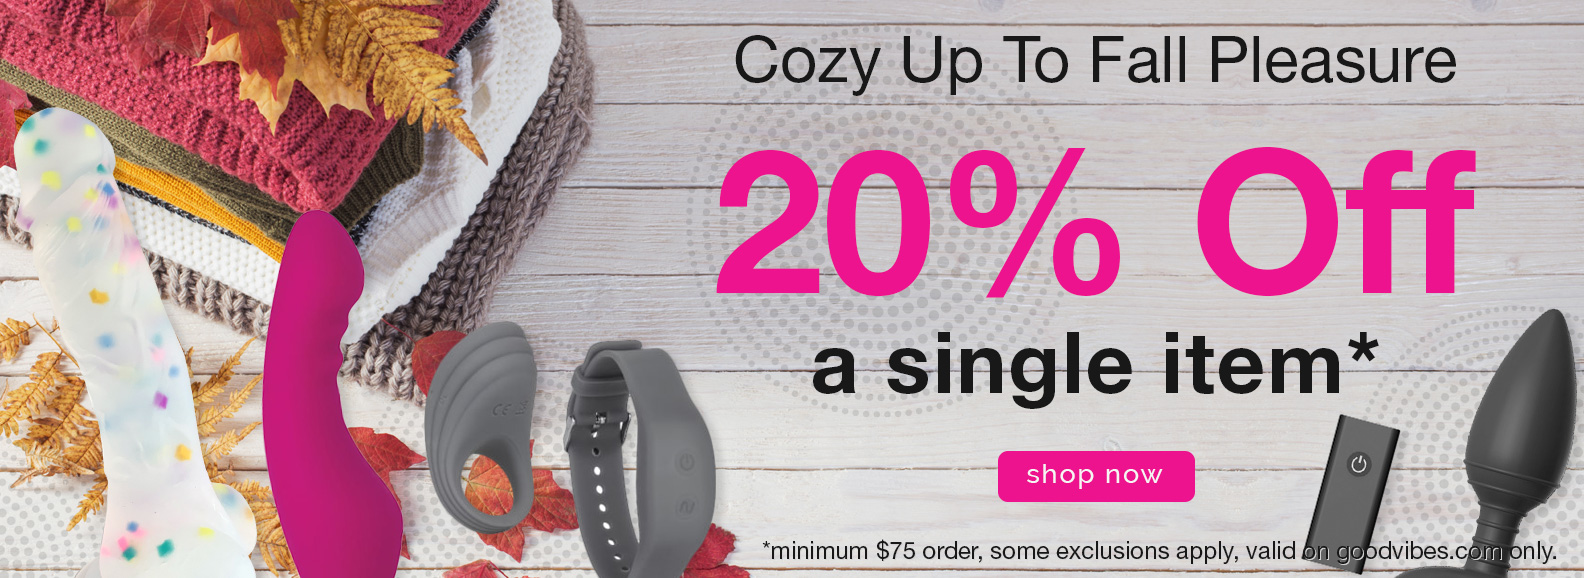 20% Off a Single Item